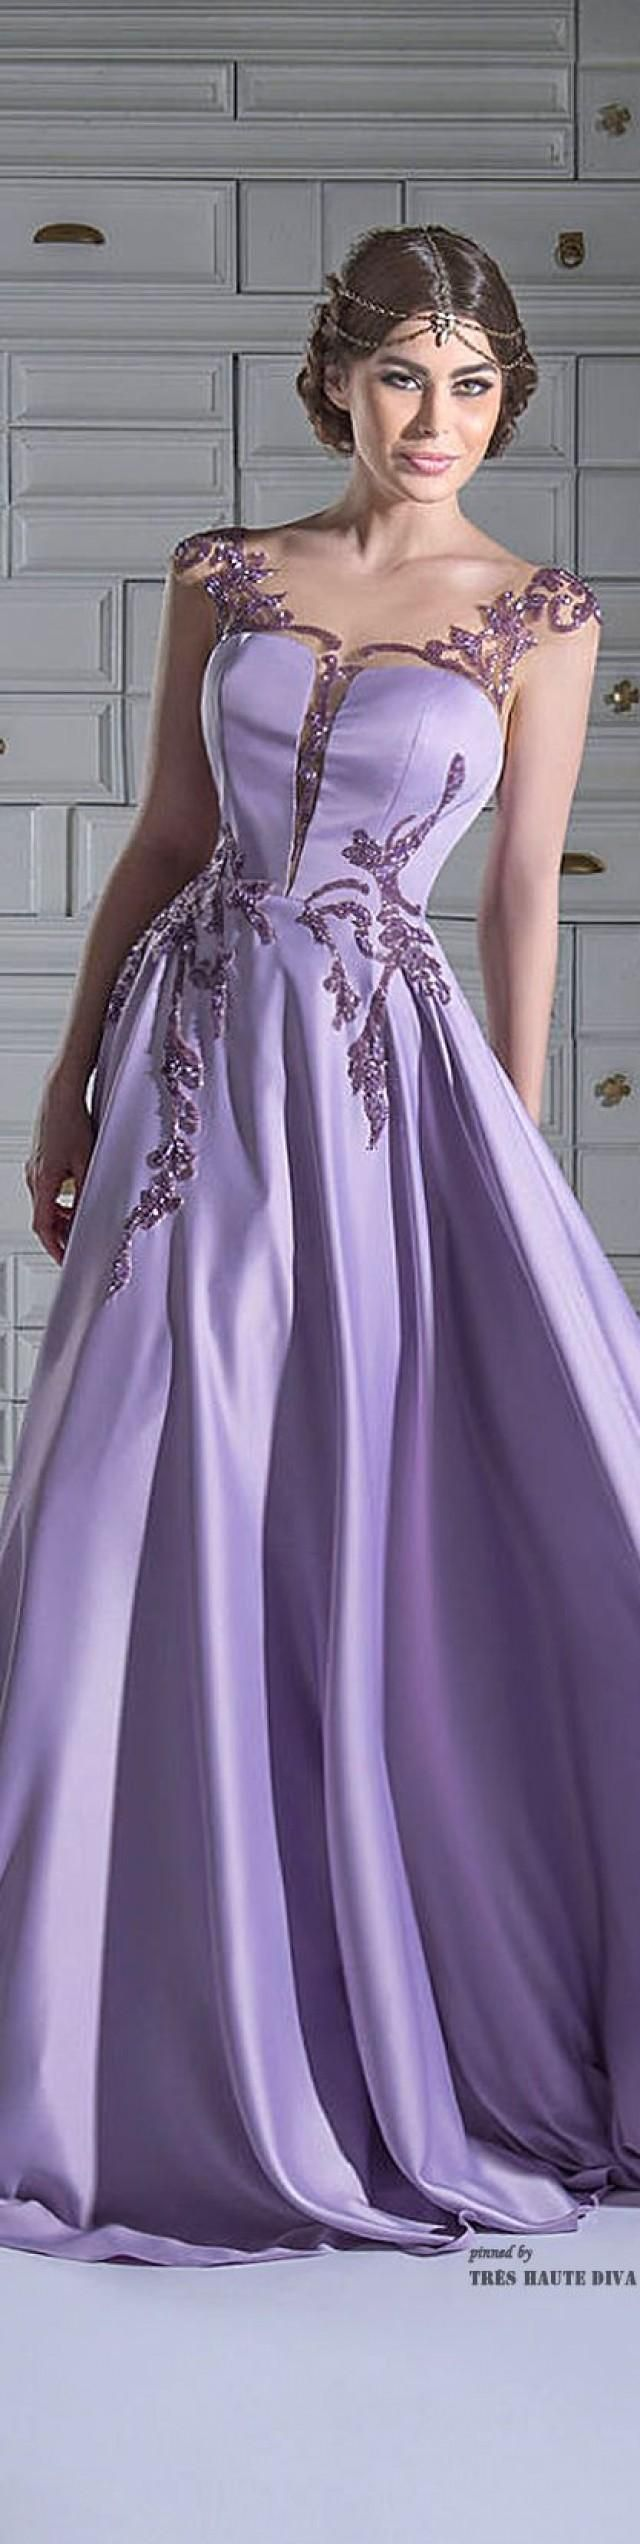 Weddbook is a content discovery engine mostly specialized on wedding concept. You can collect images, videos or articles you discovered  organize them, add your own ideas to your collections and share with other people - Chrystelle Atallah Spring/Summer 2014 #lavender